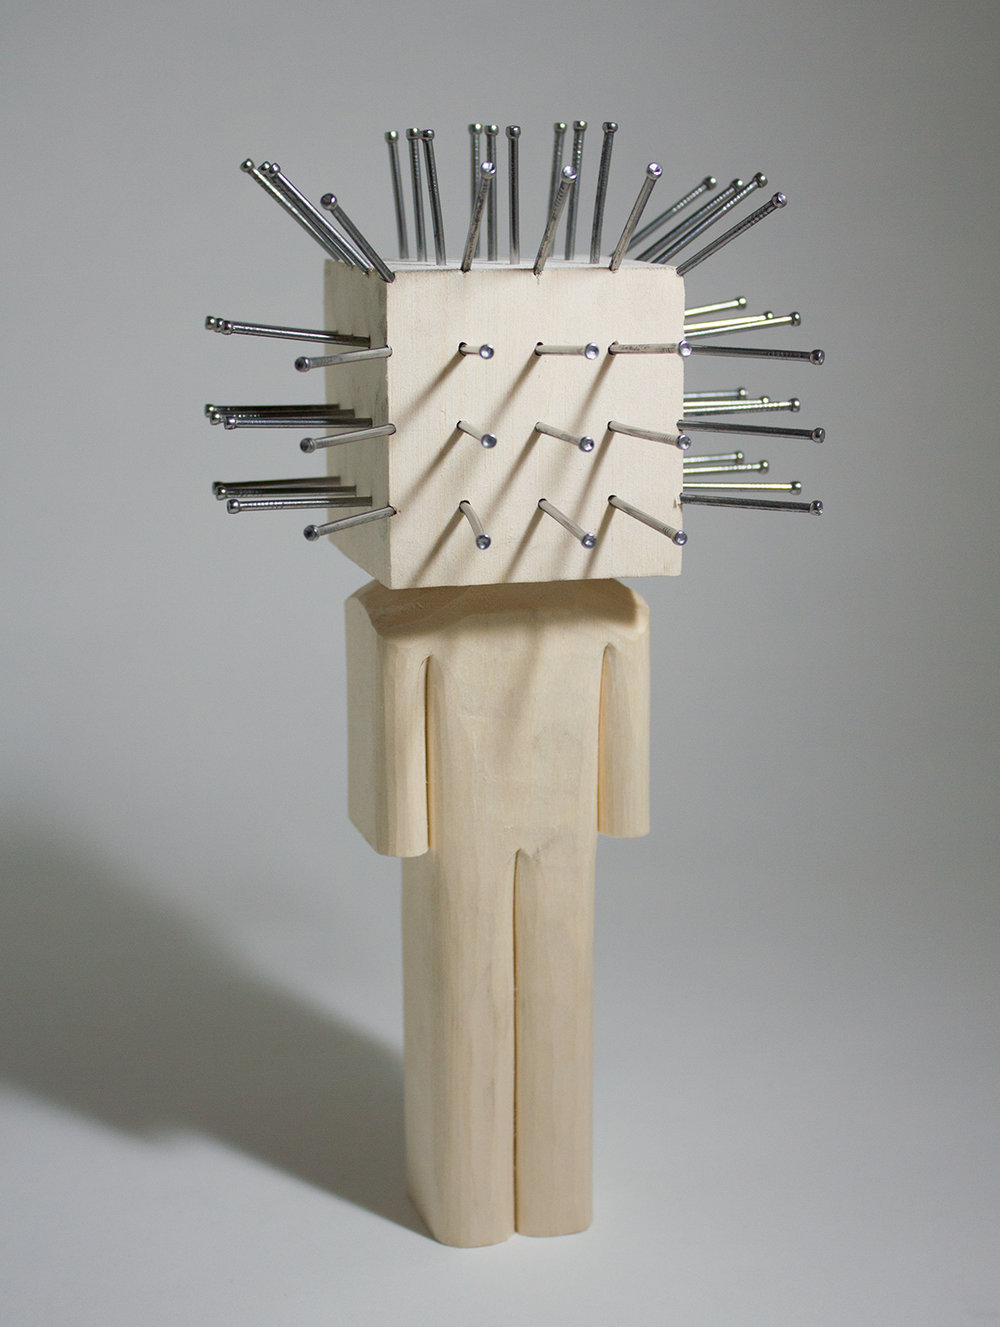 """Pinhead"" Basswood and nails. 8.5 x 4.5 x 3.25 inches. CSK 012G"